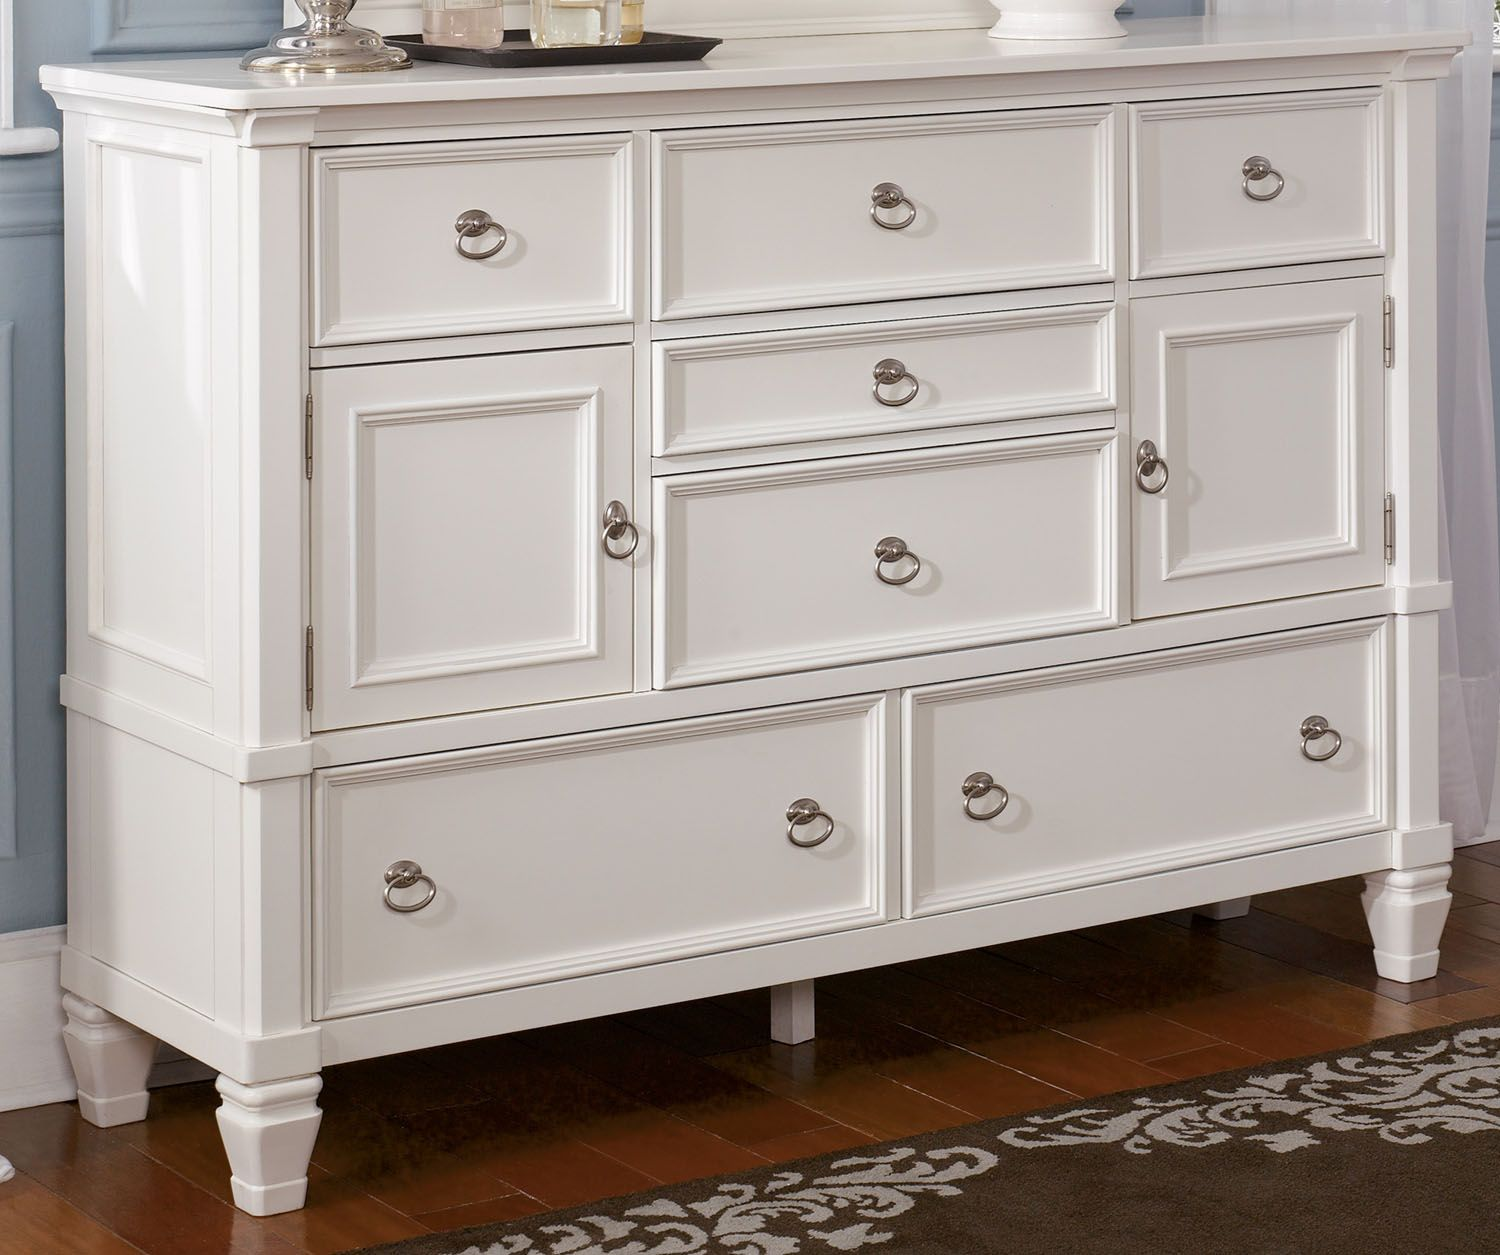 Best Prentice Dresser In White B672 31 Clearance Buy Bedroom 400 x 300